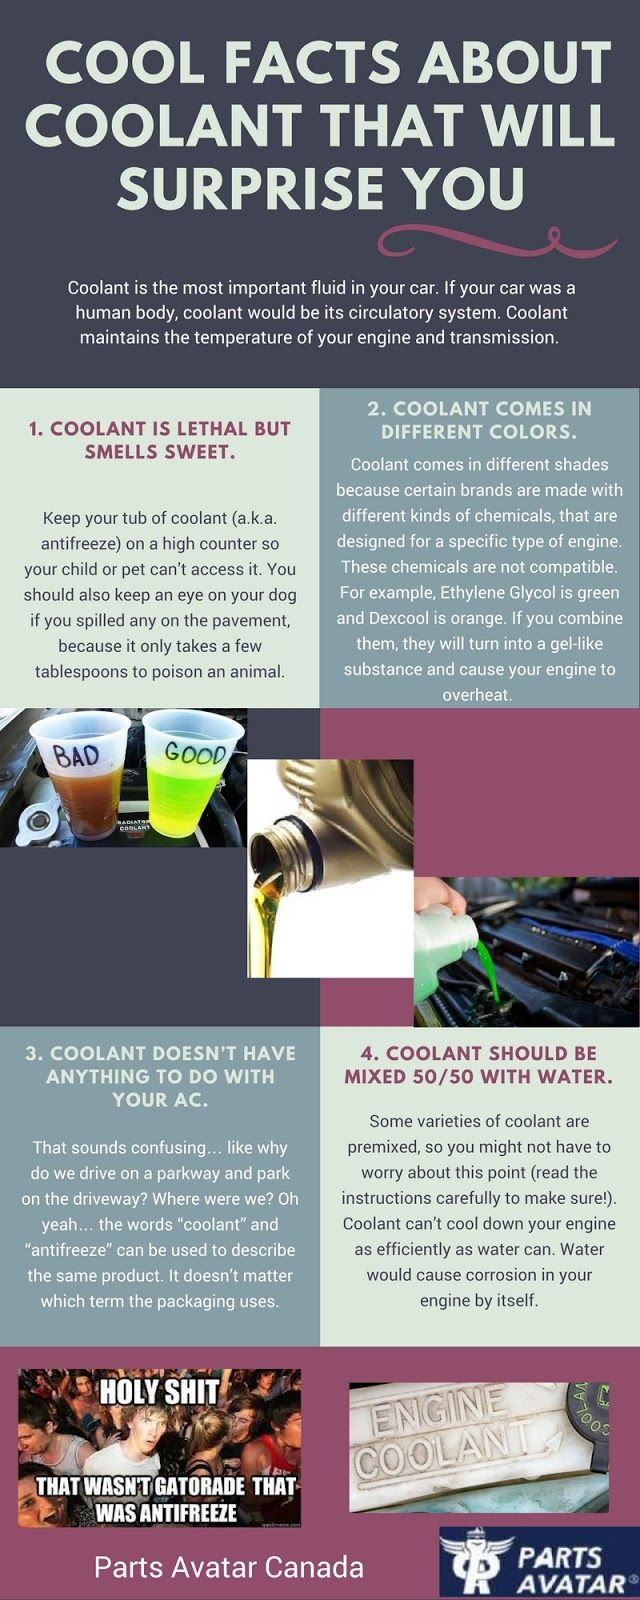 Well, we all use antifreezes and coolants in our cars. but do you know some interesting facts about coolants?? Check out this compelling infographic about coolant and upgrade your knowledge!!  Do you use high quality of anti freezes in your car? No? Then its never too late. Visit Parts Avatar Canada- the best aftermarket auto body parts store online.  Are you looking for the best performance auto parts to upgrade your ride? Or are you searching f